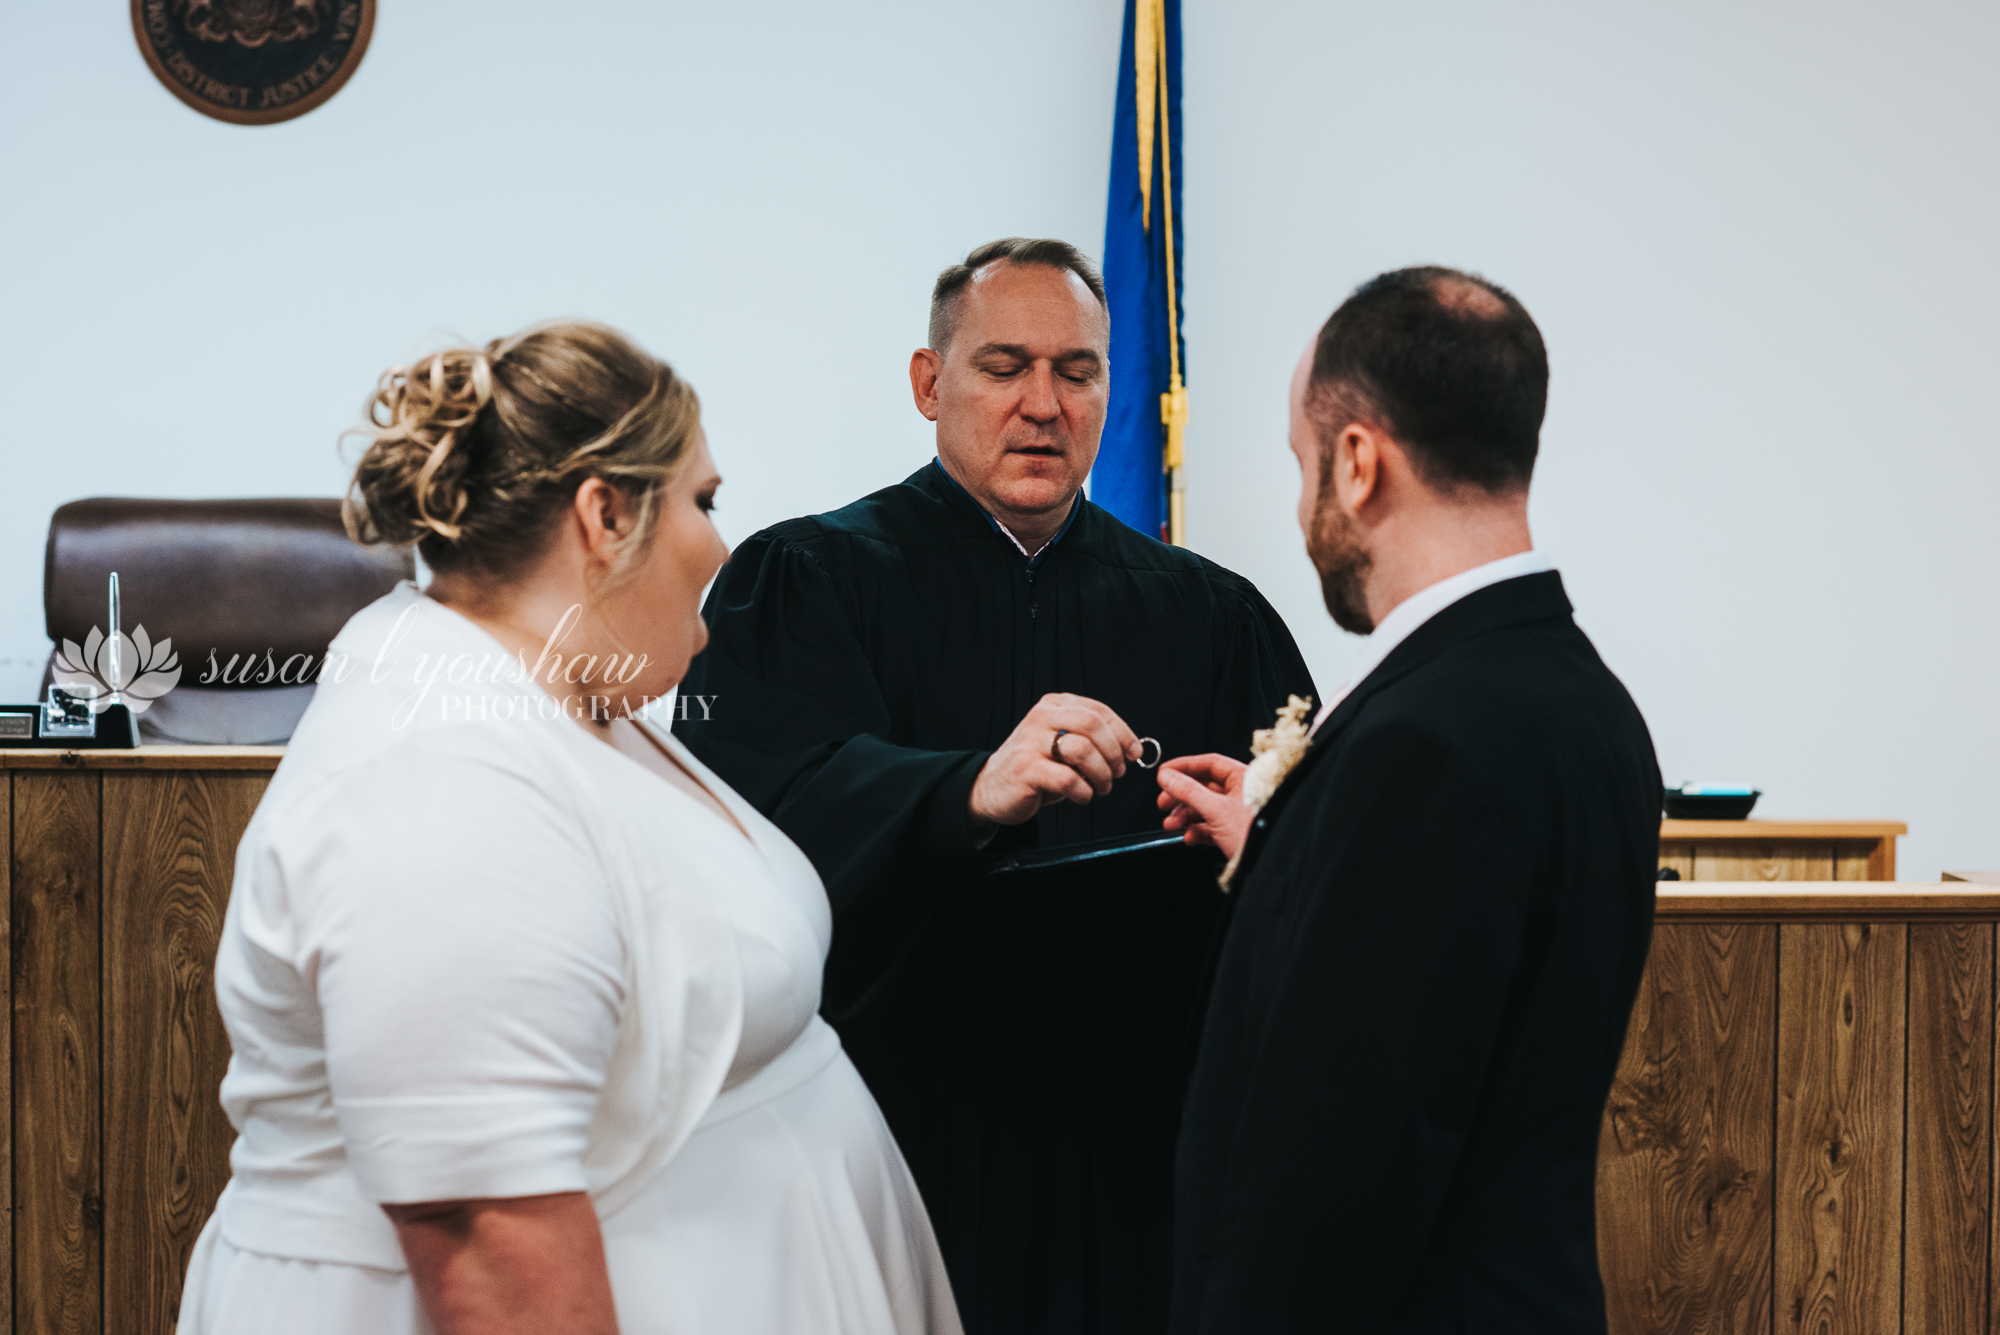 Bill and Sarah Wedding Photos 06-08-2019 SLY Photography -30.jpg